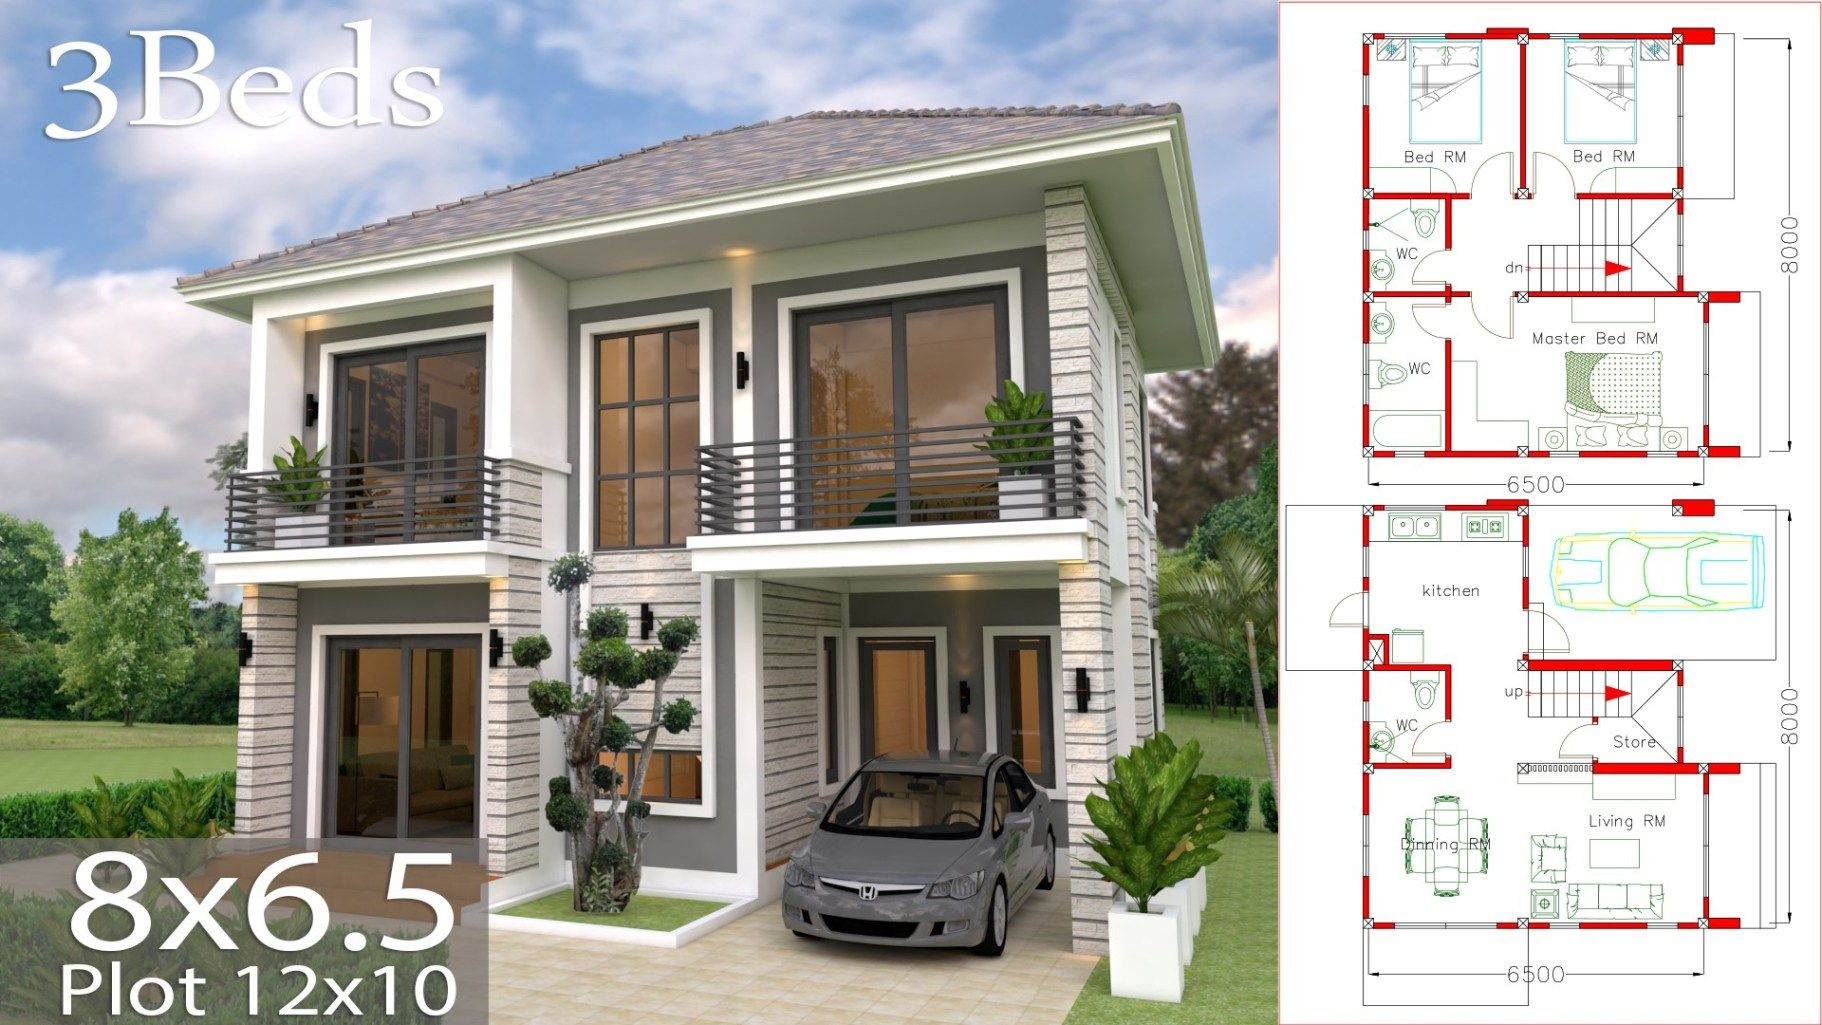 Home Design Plan 8 6 5m With 3 Bedrooms Samphoas Com Small House Design Architectural House Plans Simple House Design